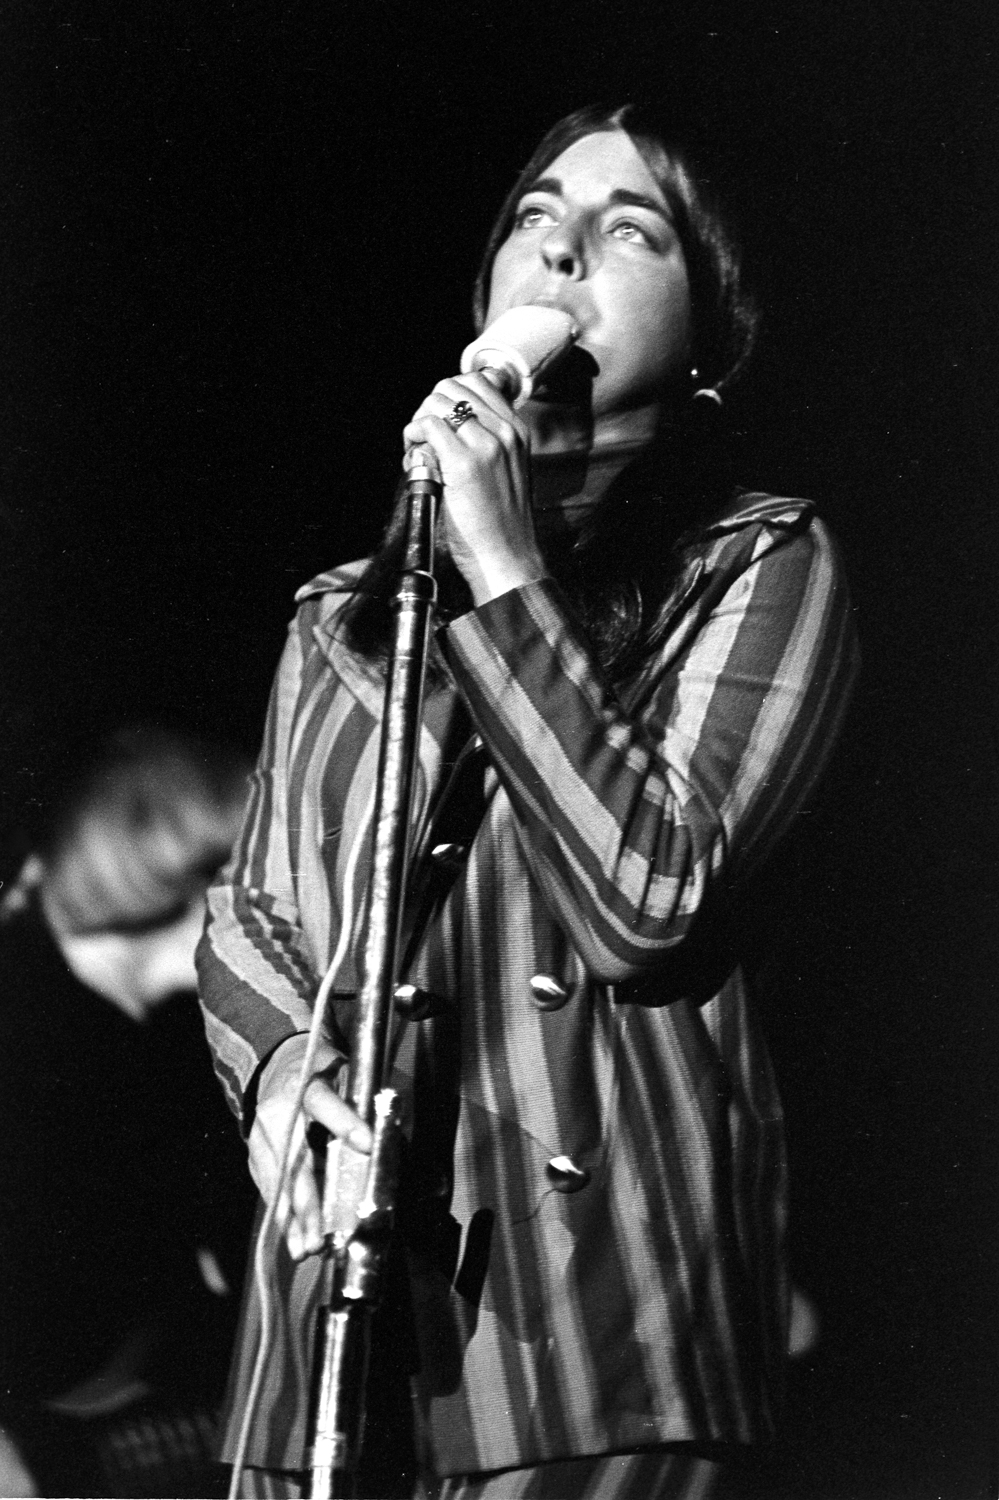 Signe Anderson fronting the Jefferson Airplane at Stanford University, 1966